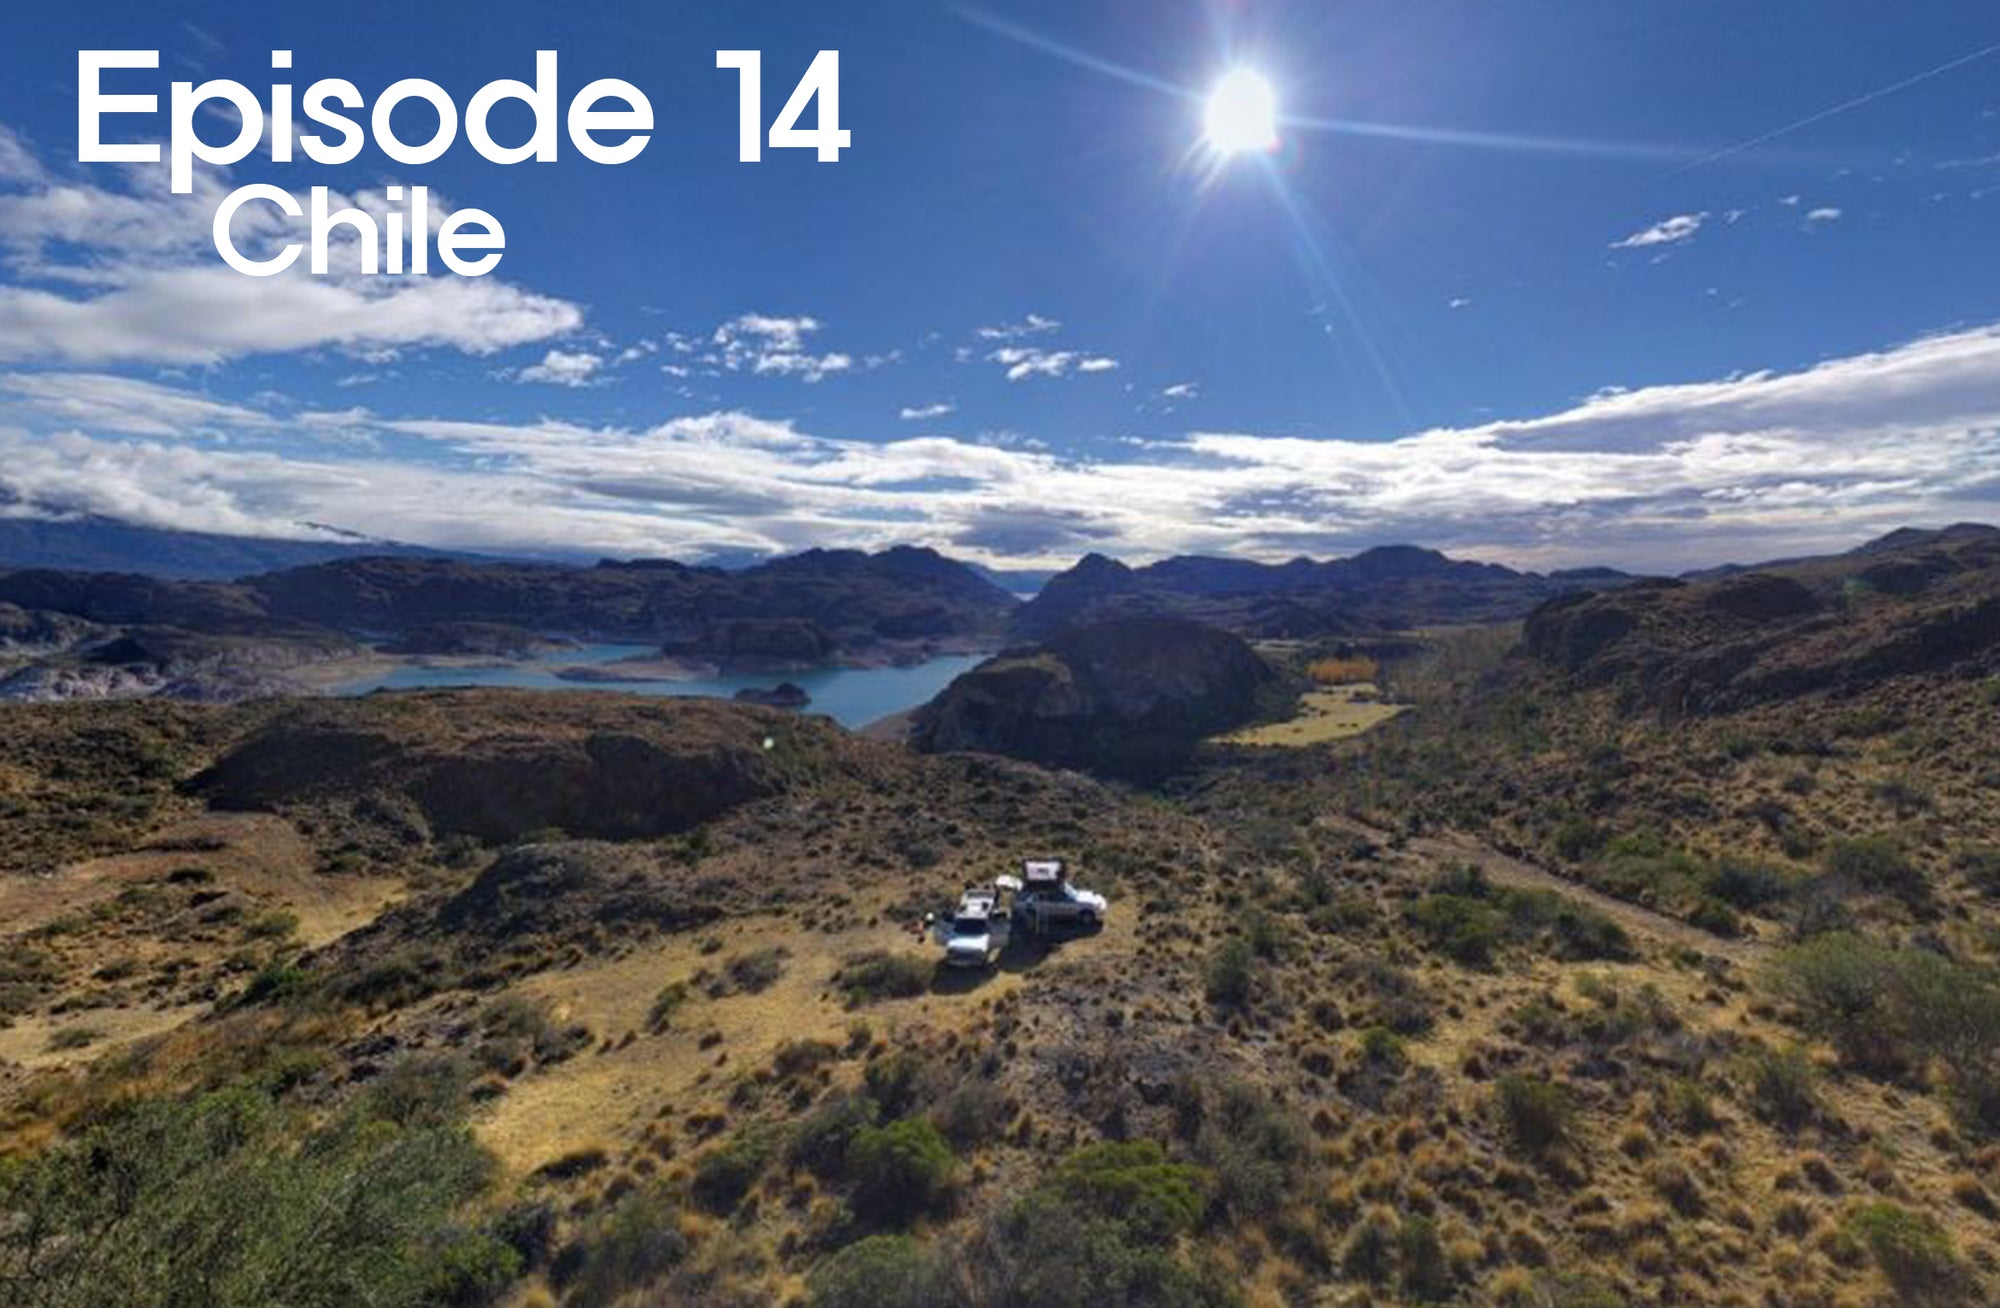 VUELTAMERICA - EPISODE 14 CHILE